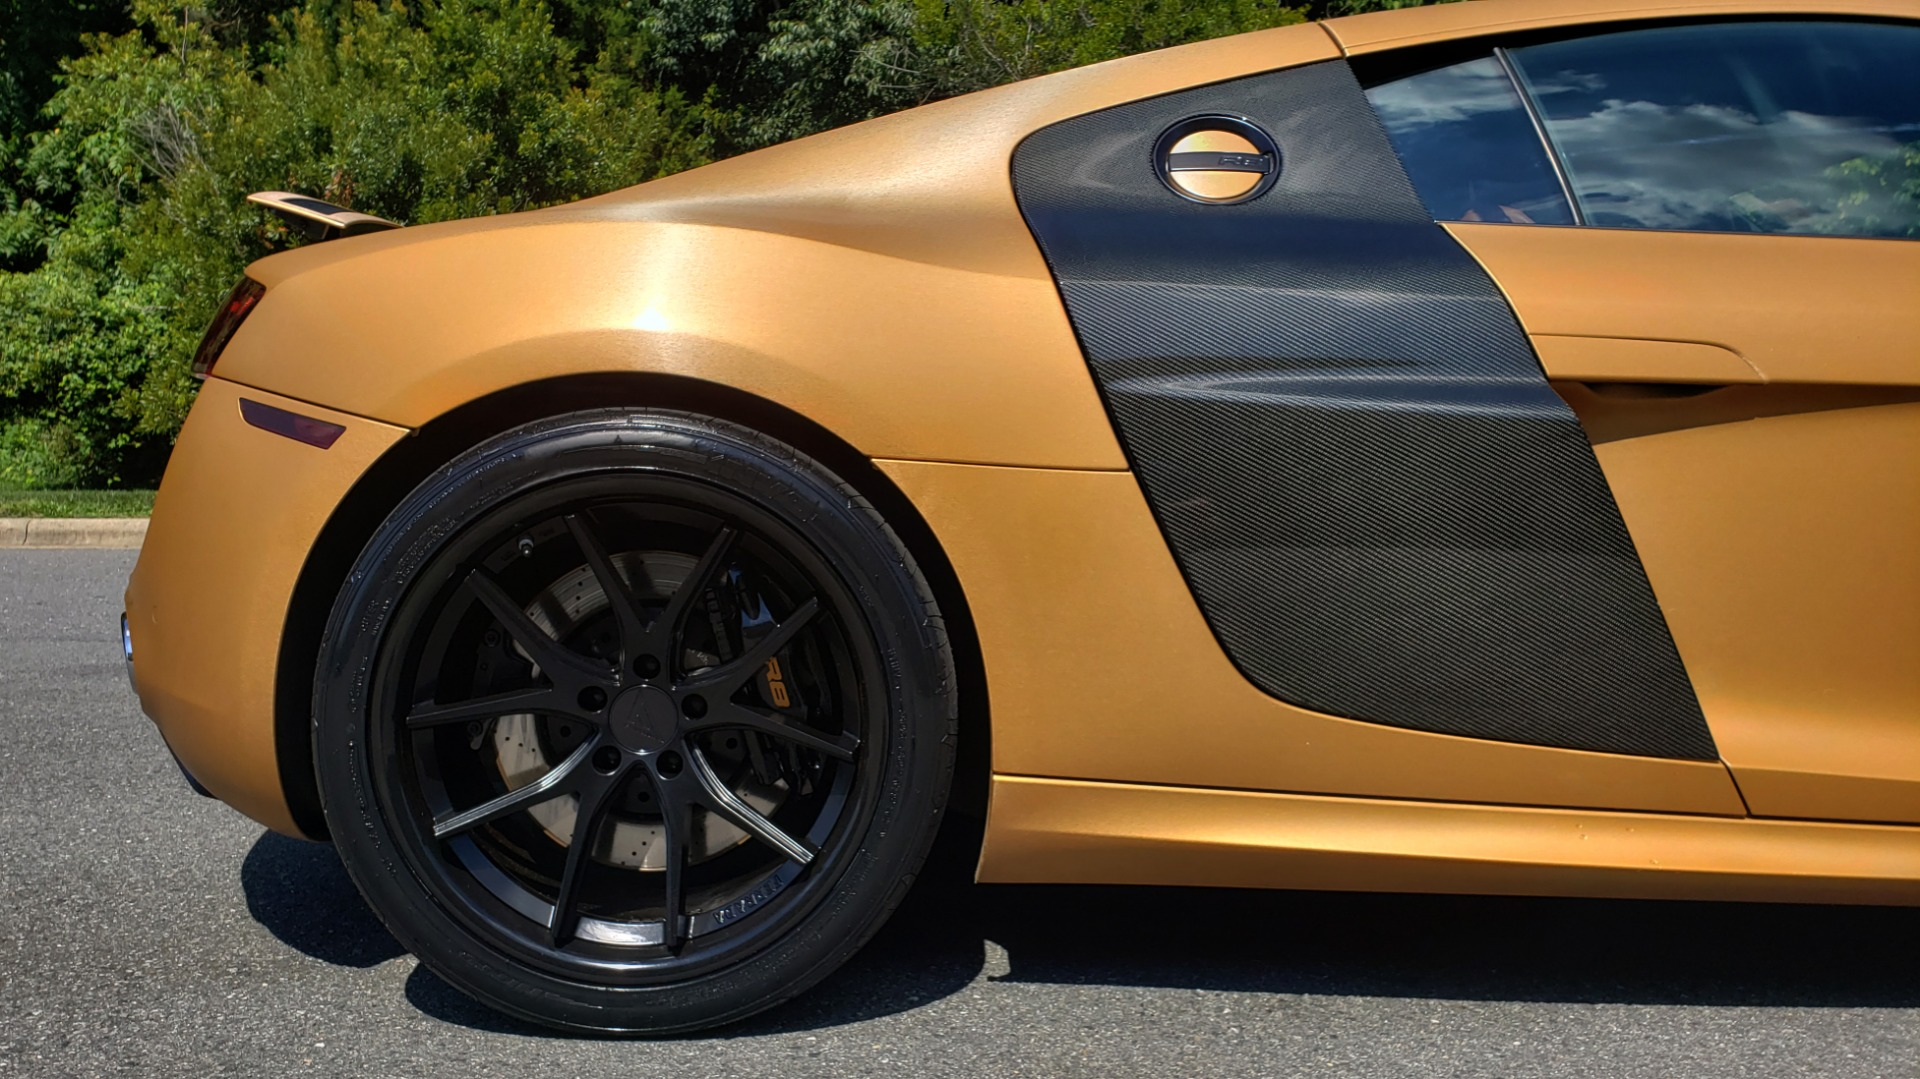 Used 2012 Audi R8 V10 5.2L / CUST WRAP BRUSHED BRONZE / NAV / B&O SOUND / CUST 19IN WHLS for sale $79,999 at Formula Imports in Charlotte NC 28227 66